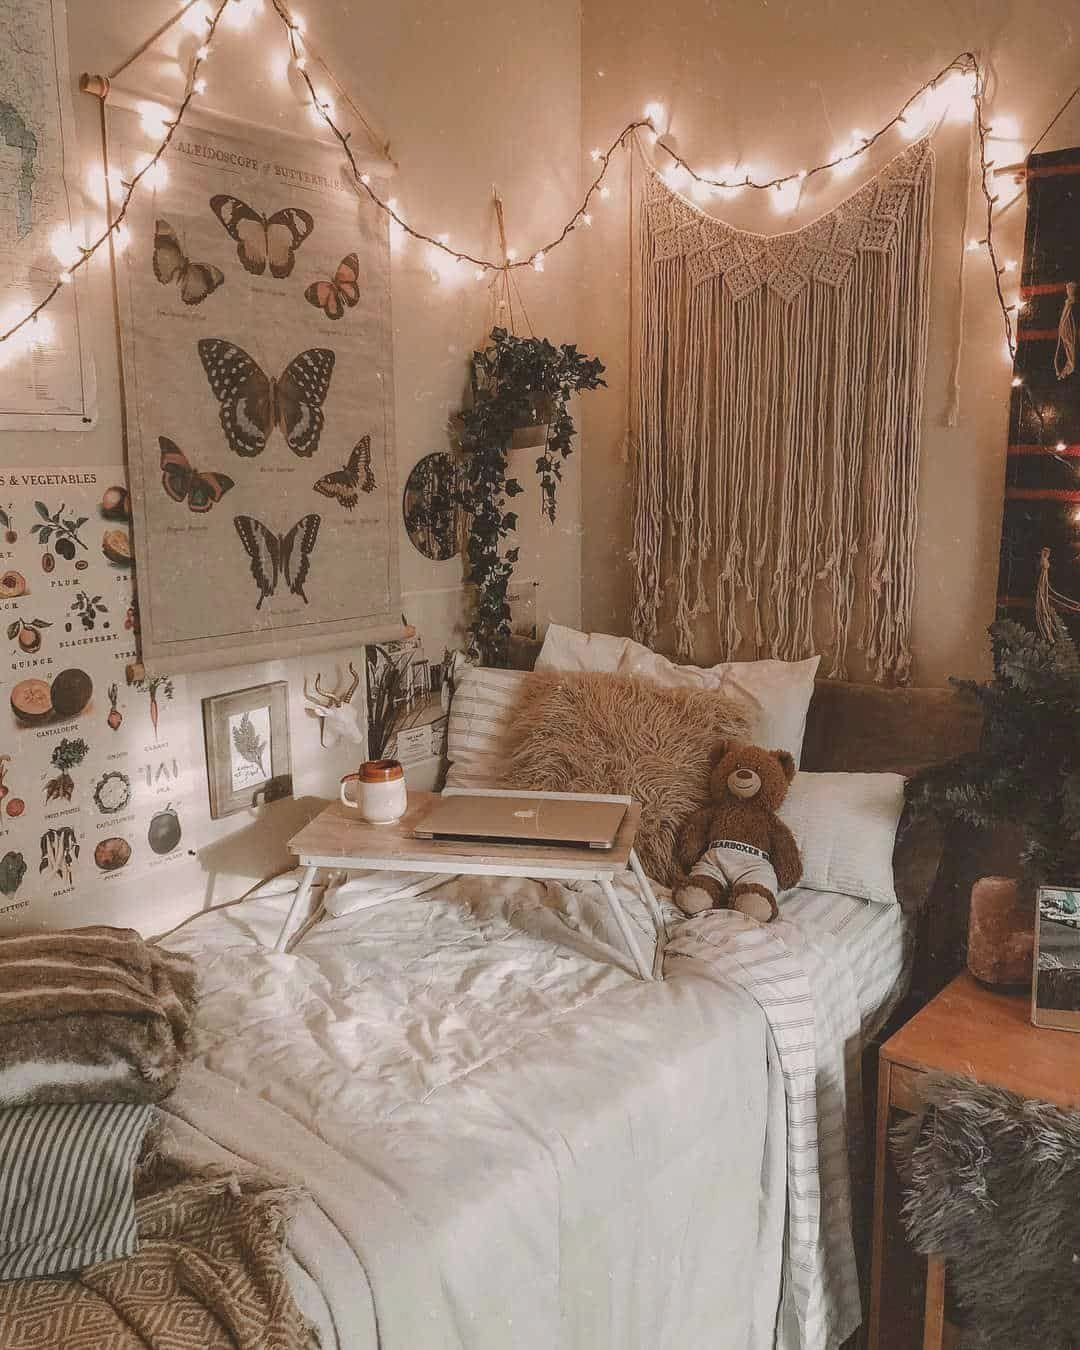 14 Dorm Room Ideas for Girls That Are Melting Our Minds - #bedroominspo